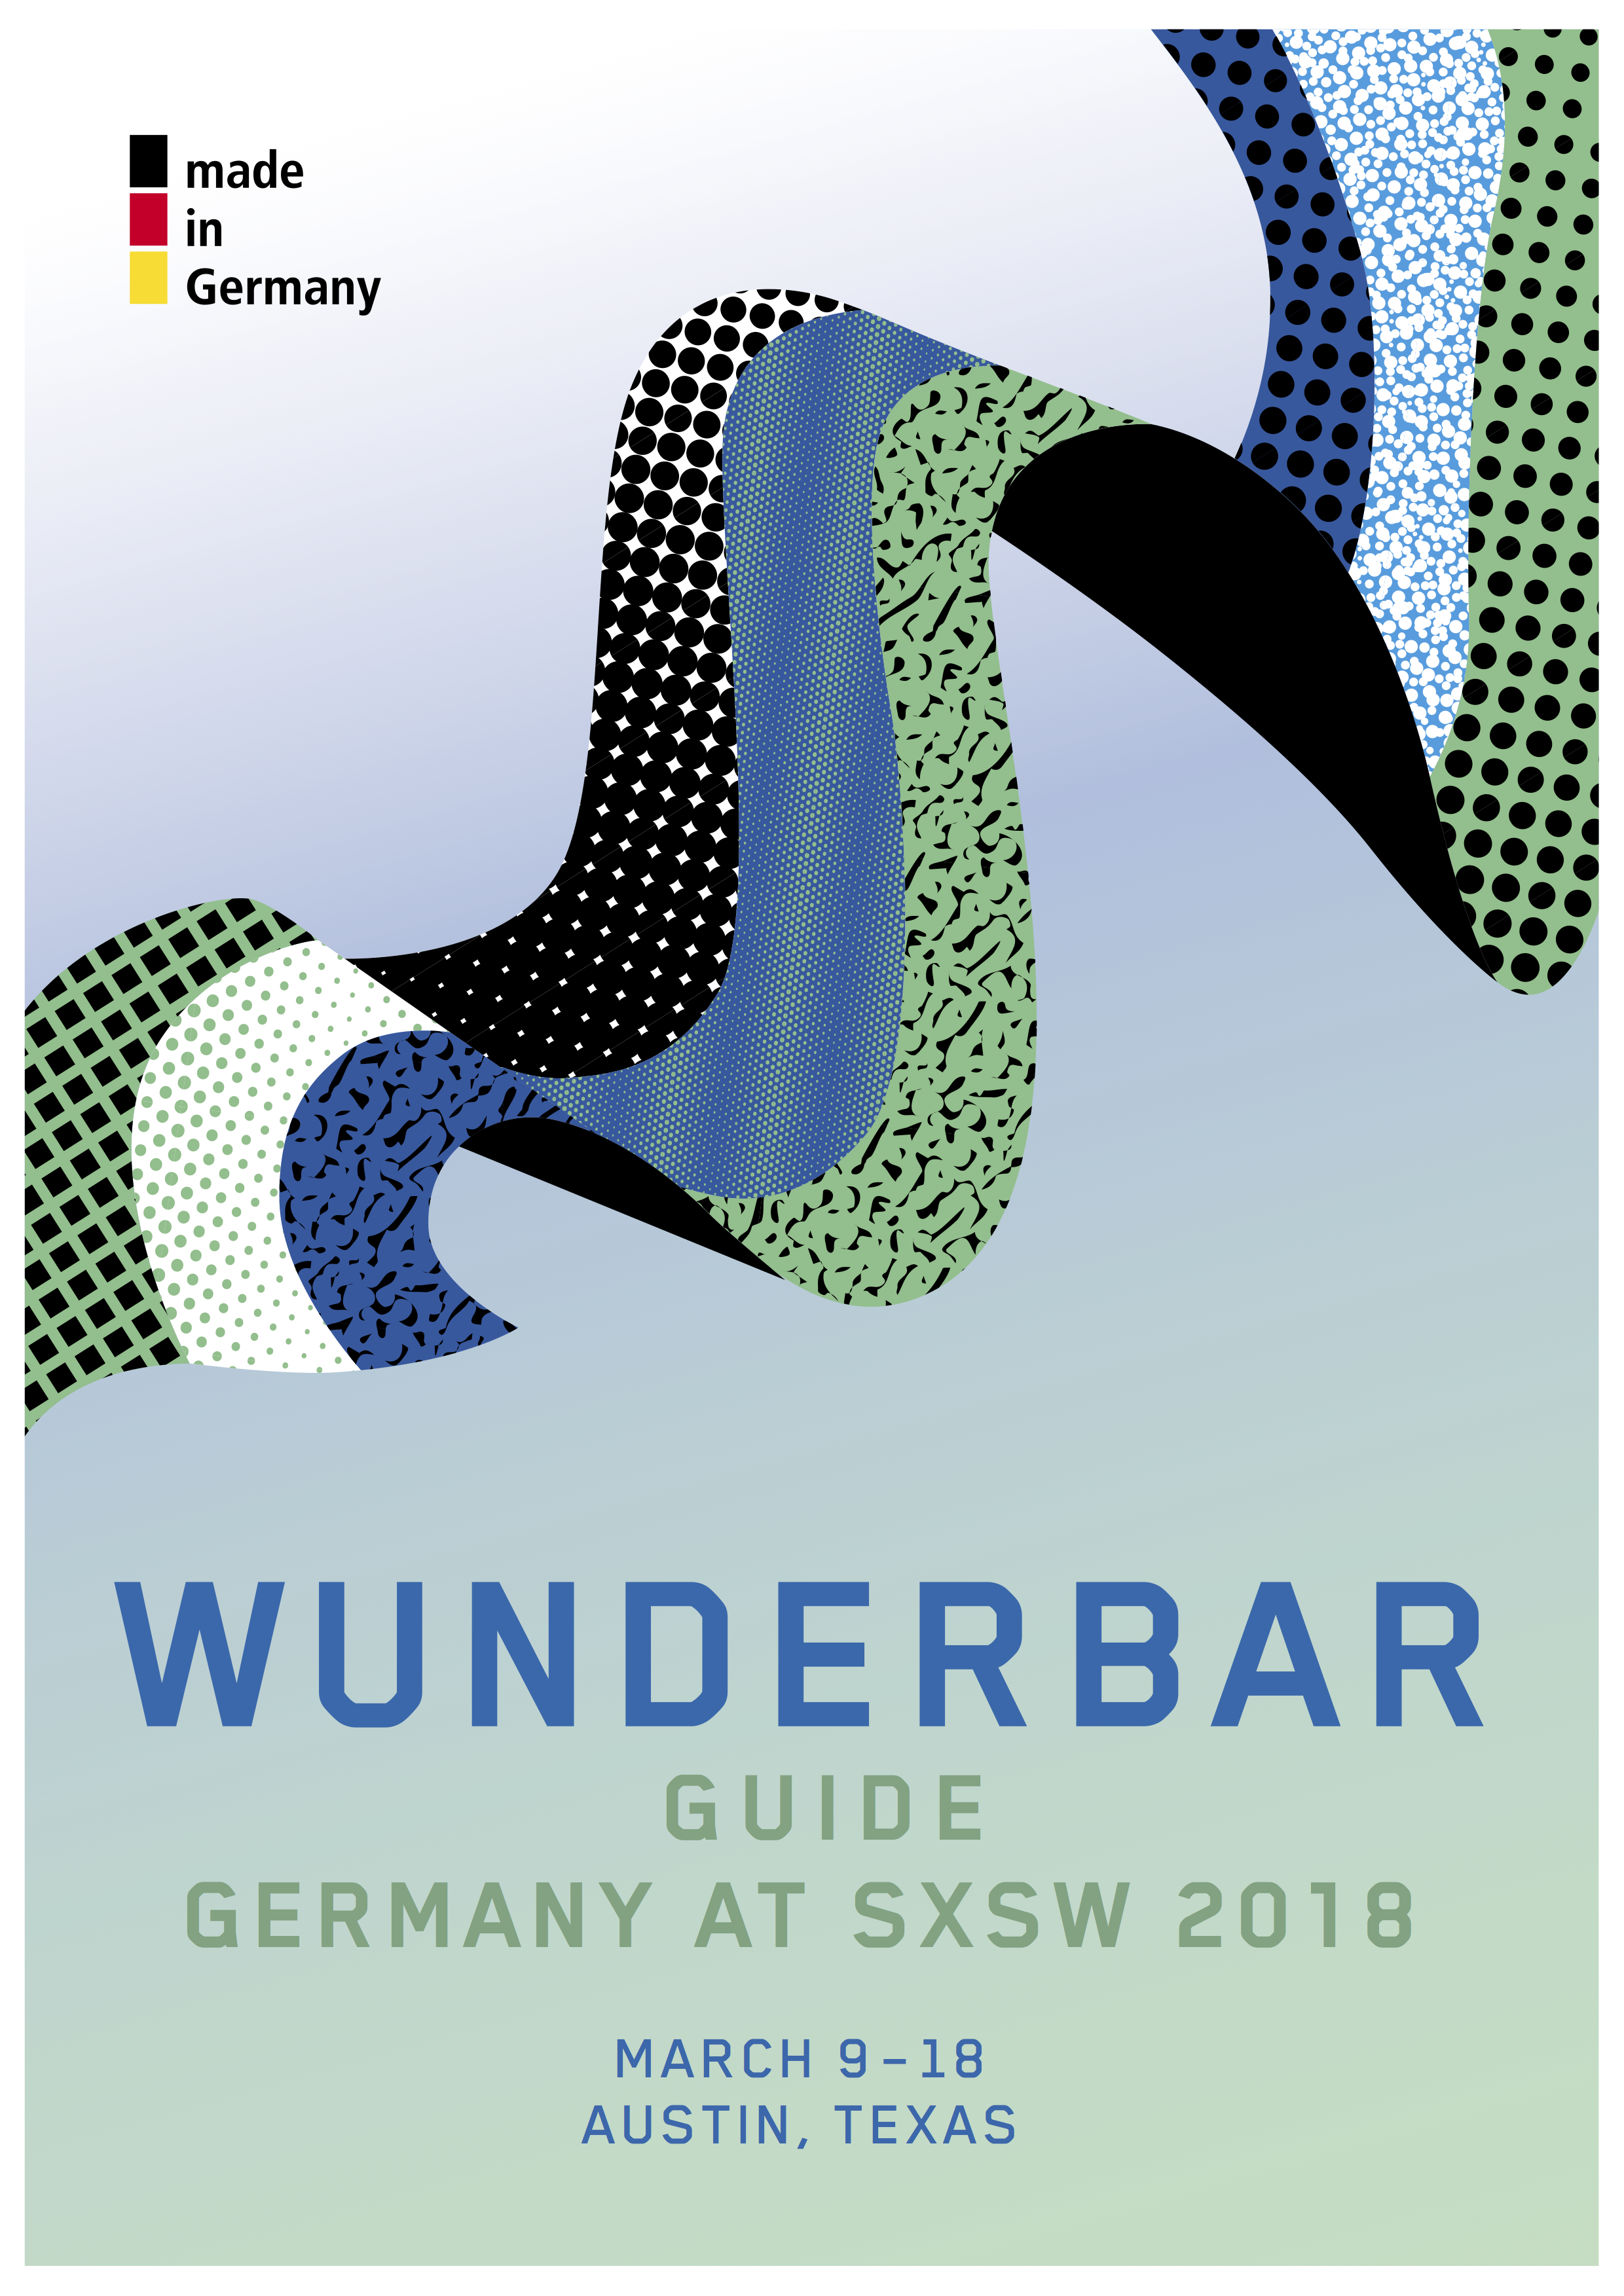 WUNDERBAR GUIDE - GERMANY AT SXSW 2018